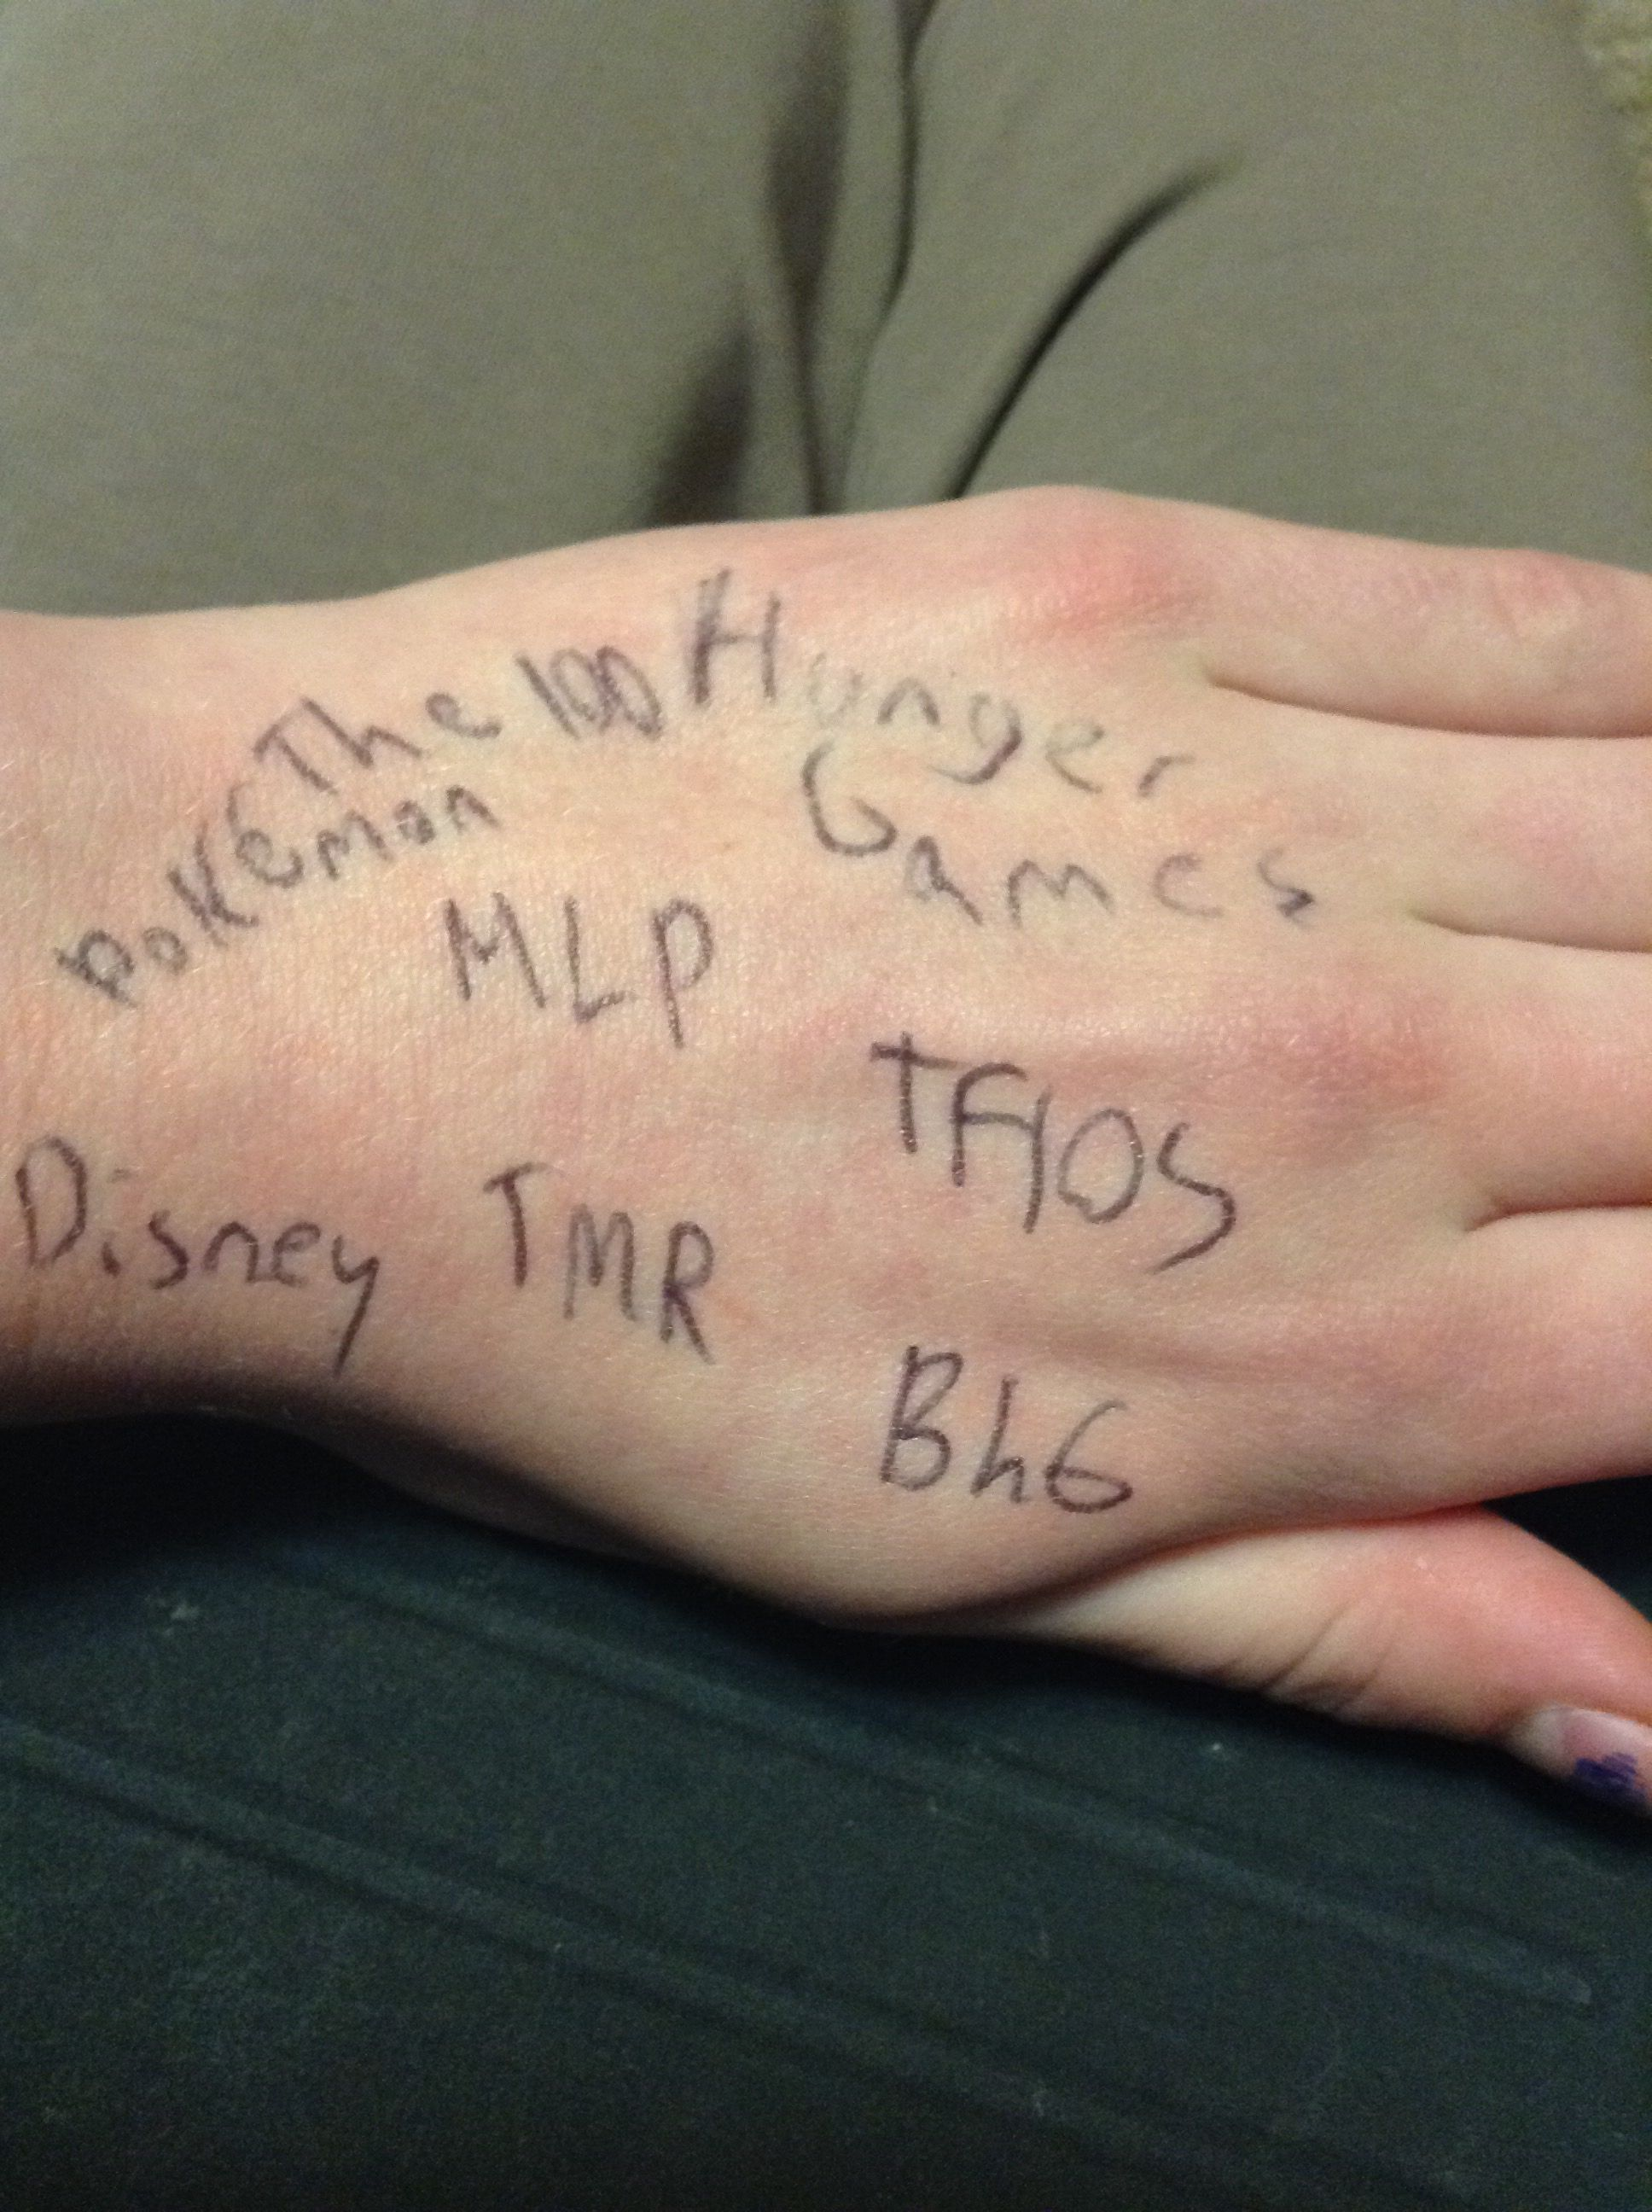 Fandoms unite!!! Started by @LilayJae  March 20-27 write all the names of your fandoms on your hand